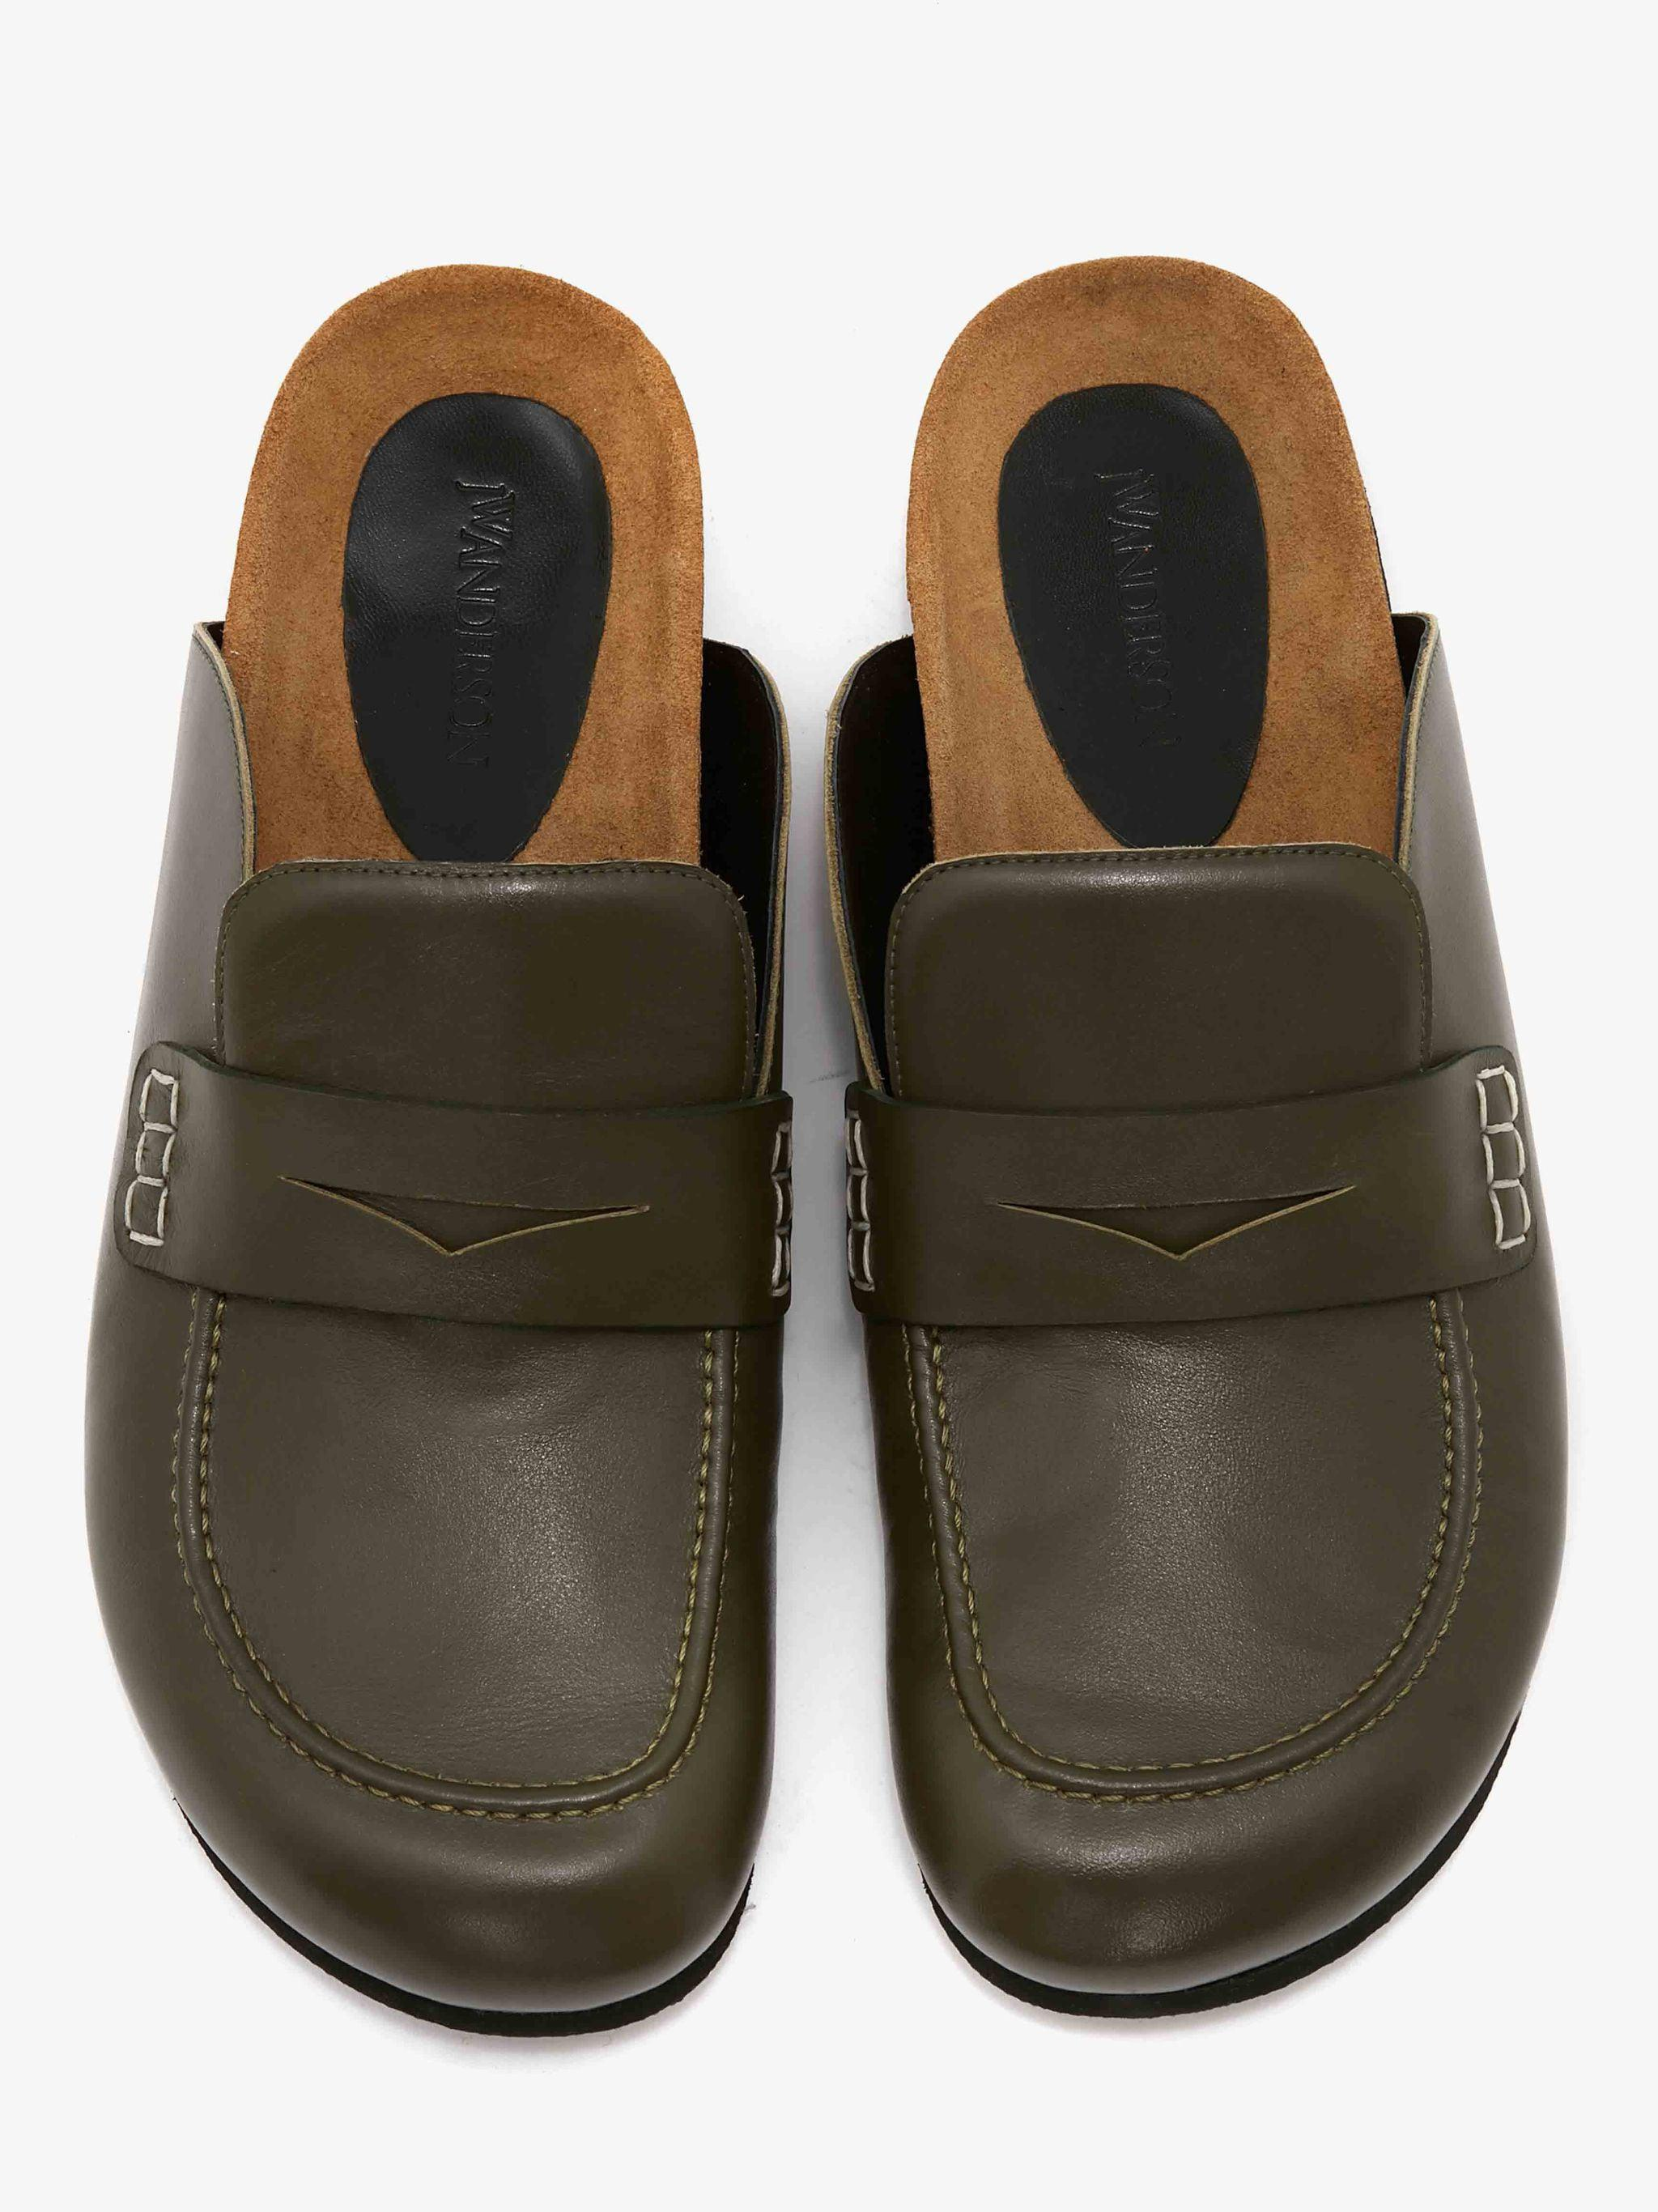 WOMEN'S LEATHER LOAFER MULES 3